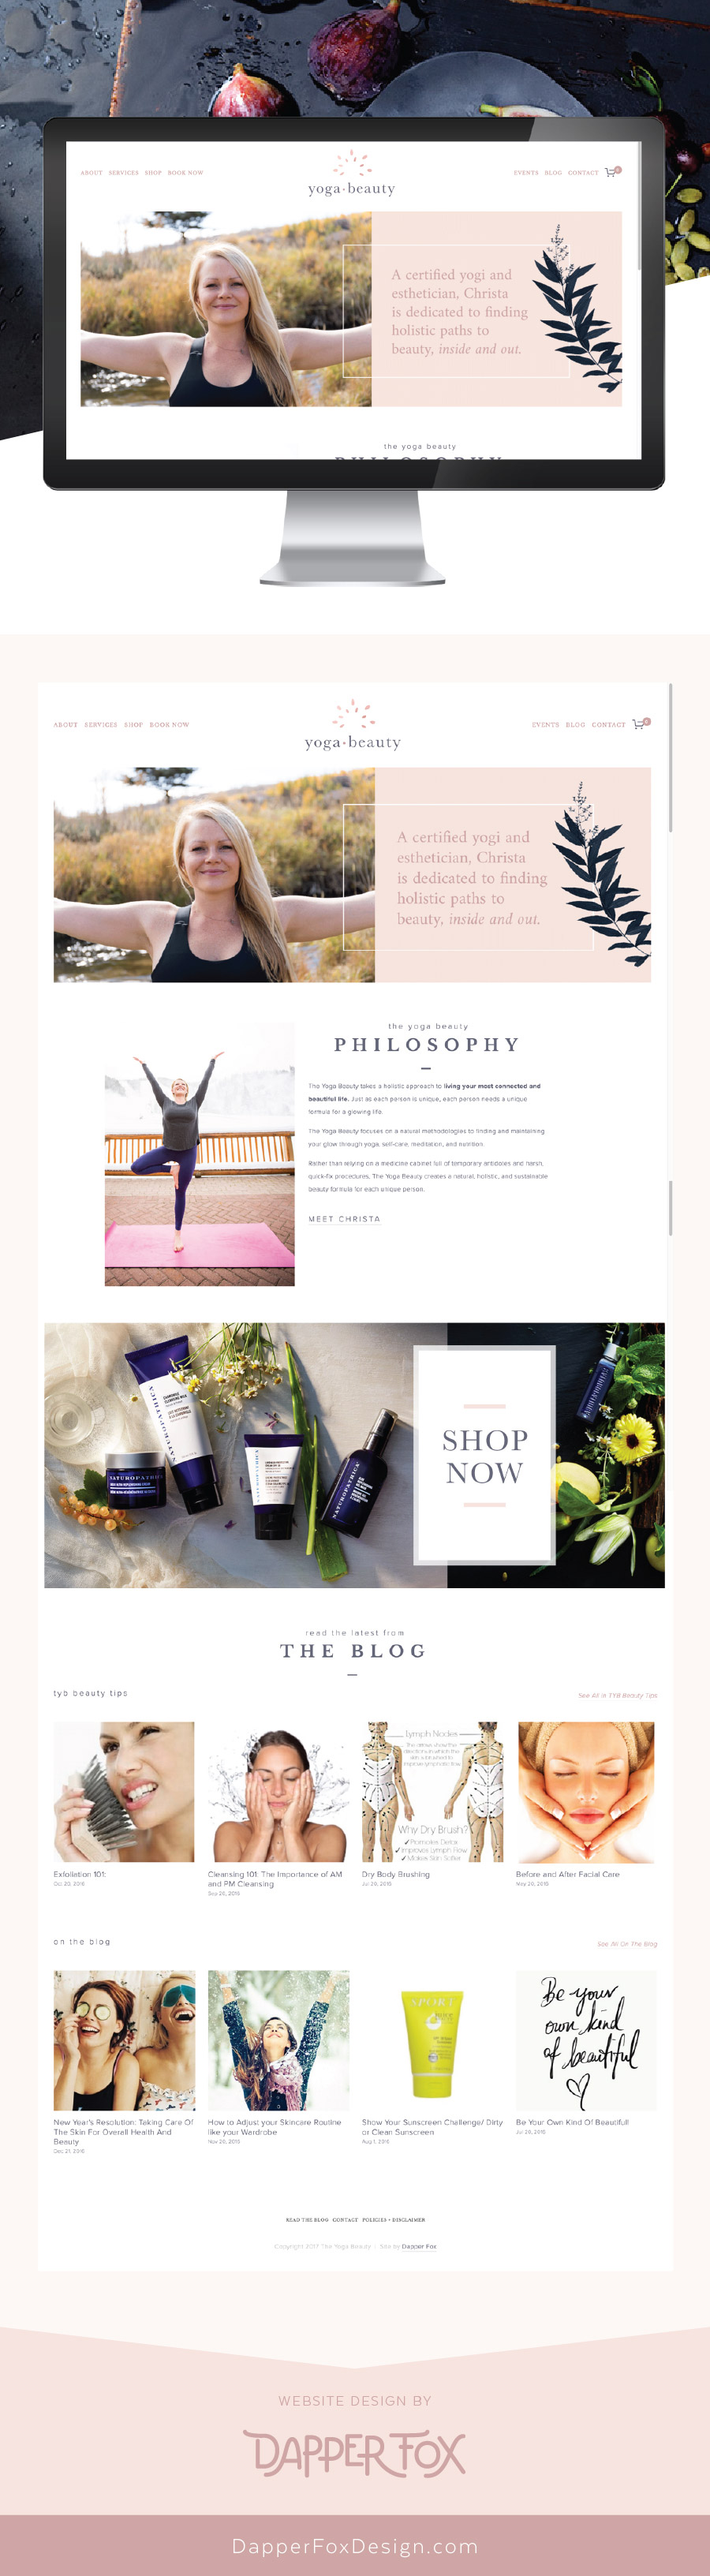 Home Page Design - The Yoga Beauty Squarespace Website Design   and Branding by Dapper Fox Design